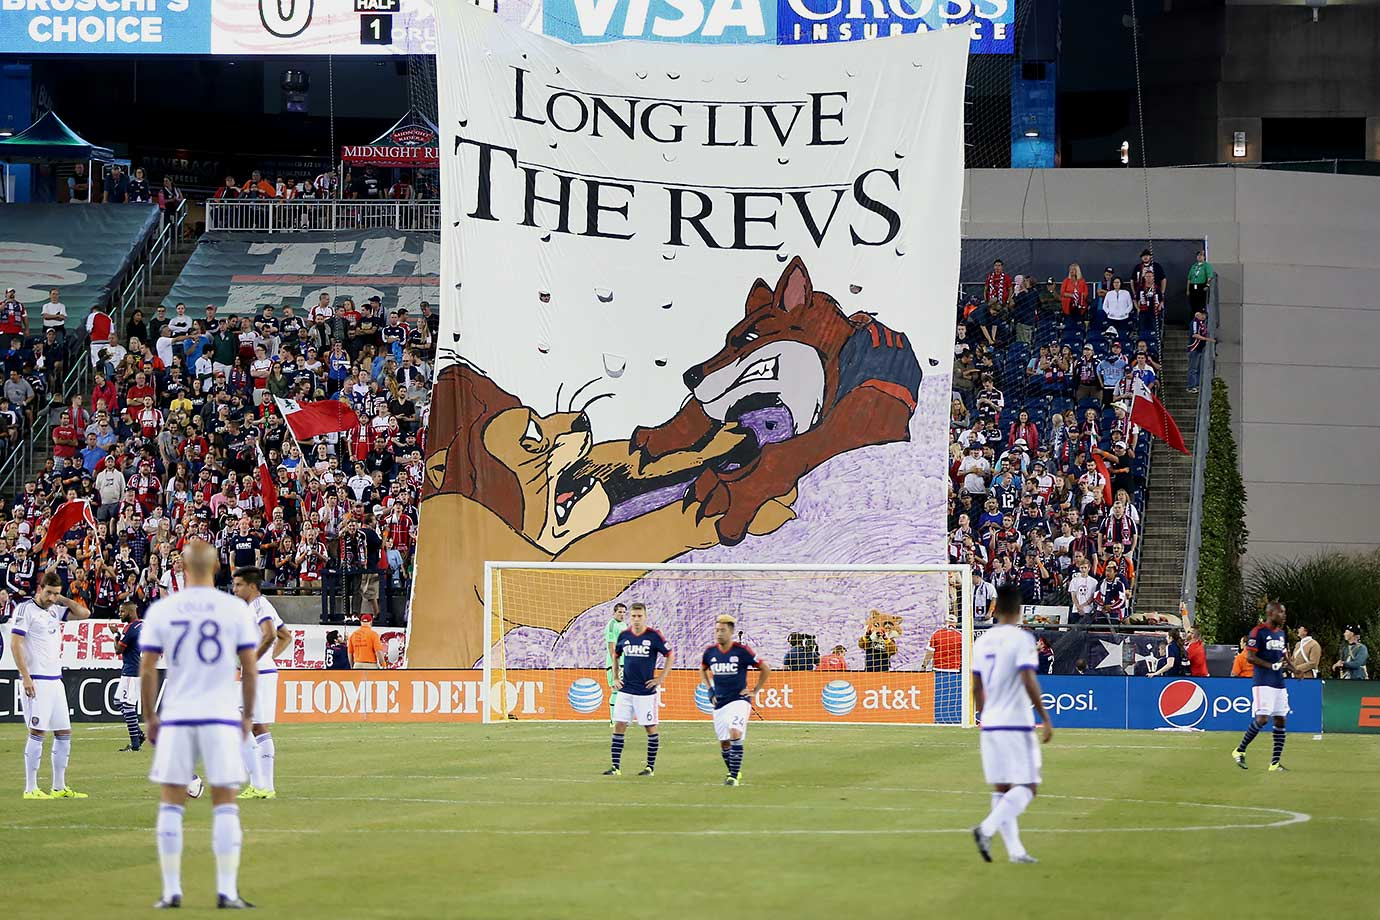 New England Revolution fans display a Lion King theme in honor of Orlando City FC's first visit to Gillette Stadium on September 5, 2015.